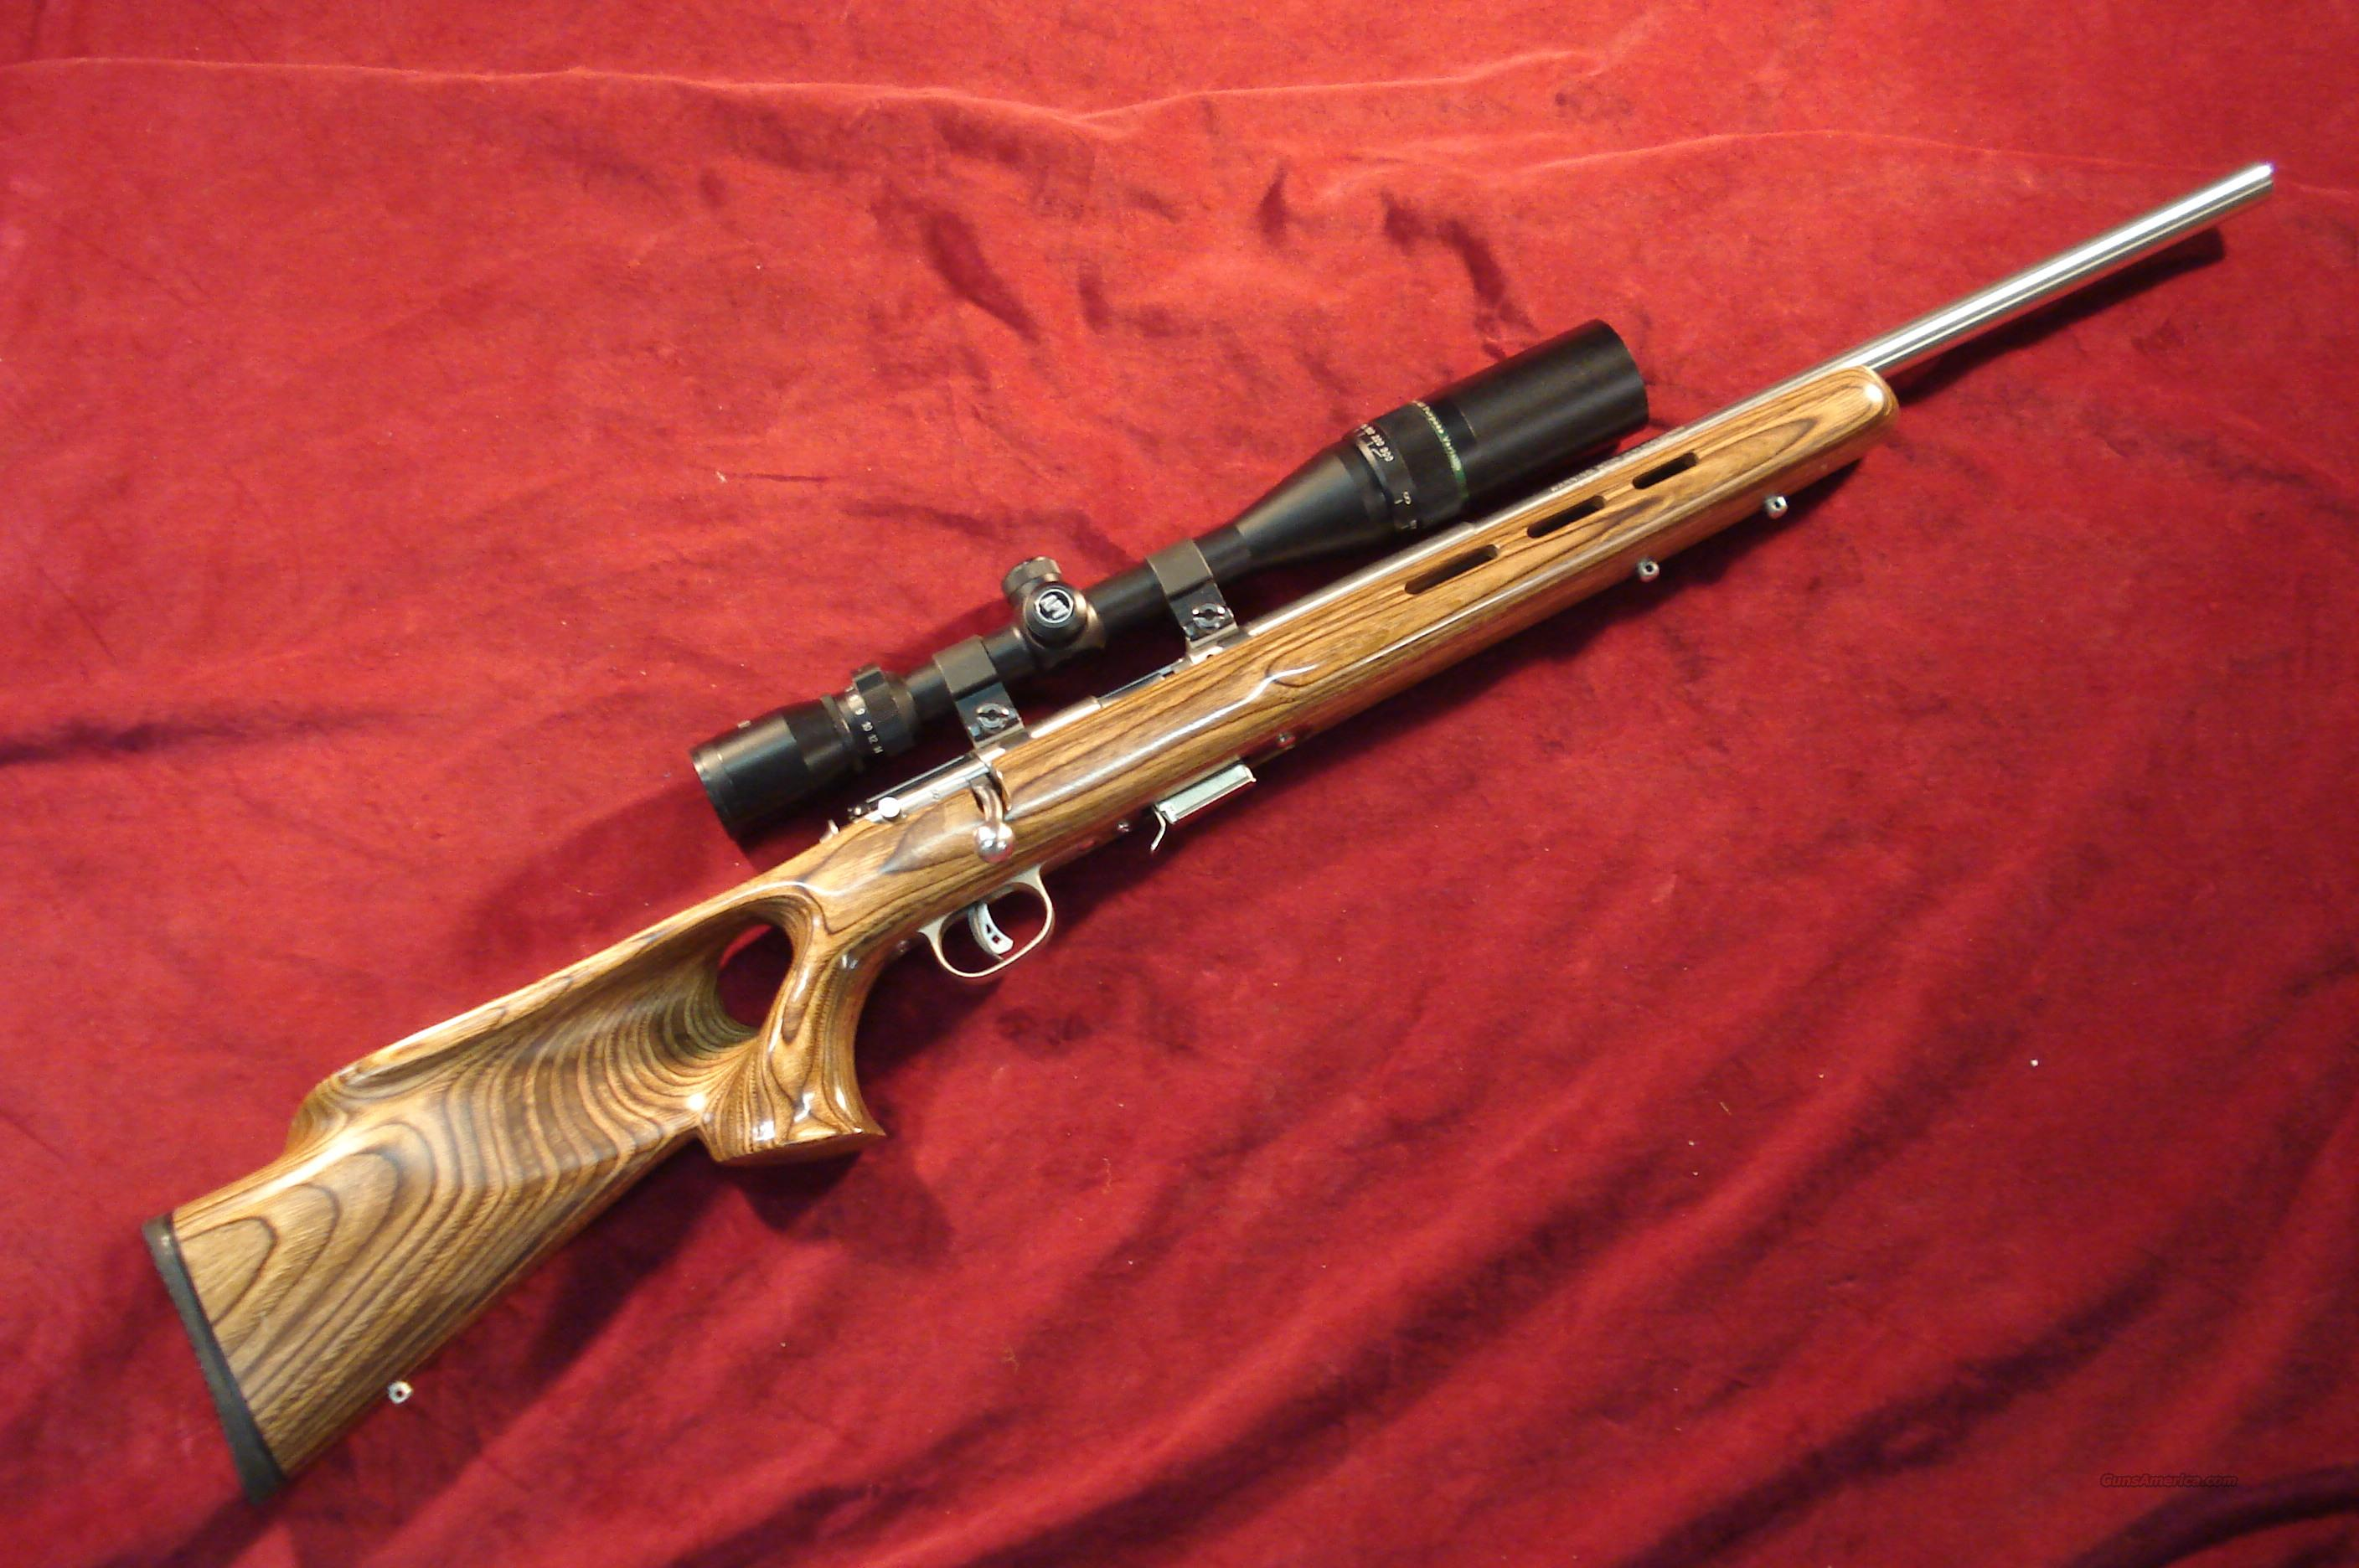 SAVAGE 17HMR STAINLESS LAMINATE THUMBHOLE WITH SCOPE USED (93R17BTVS)  Guns > Rifles > Savage Rifles > Accutrigger Models > Sporting